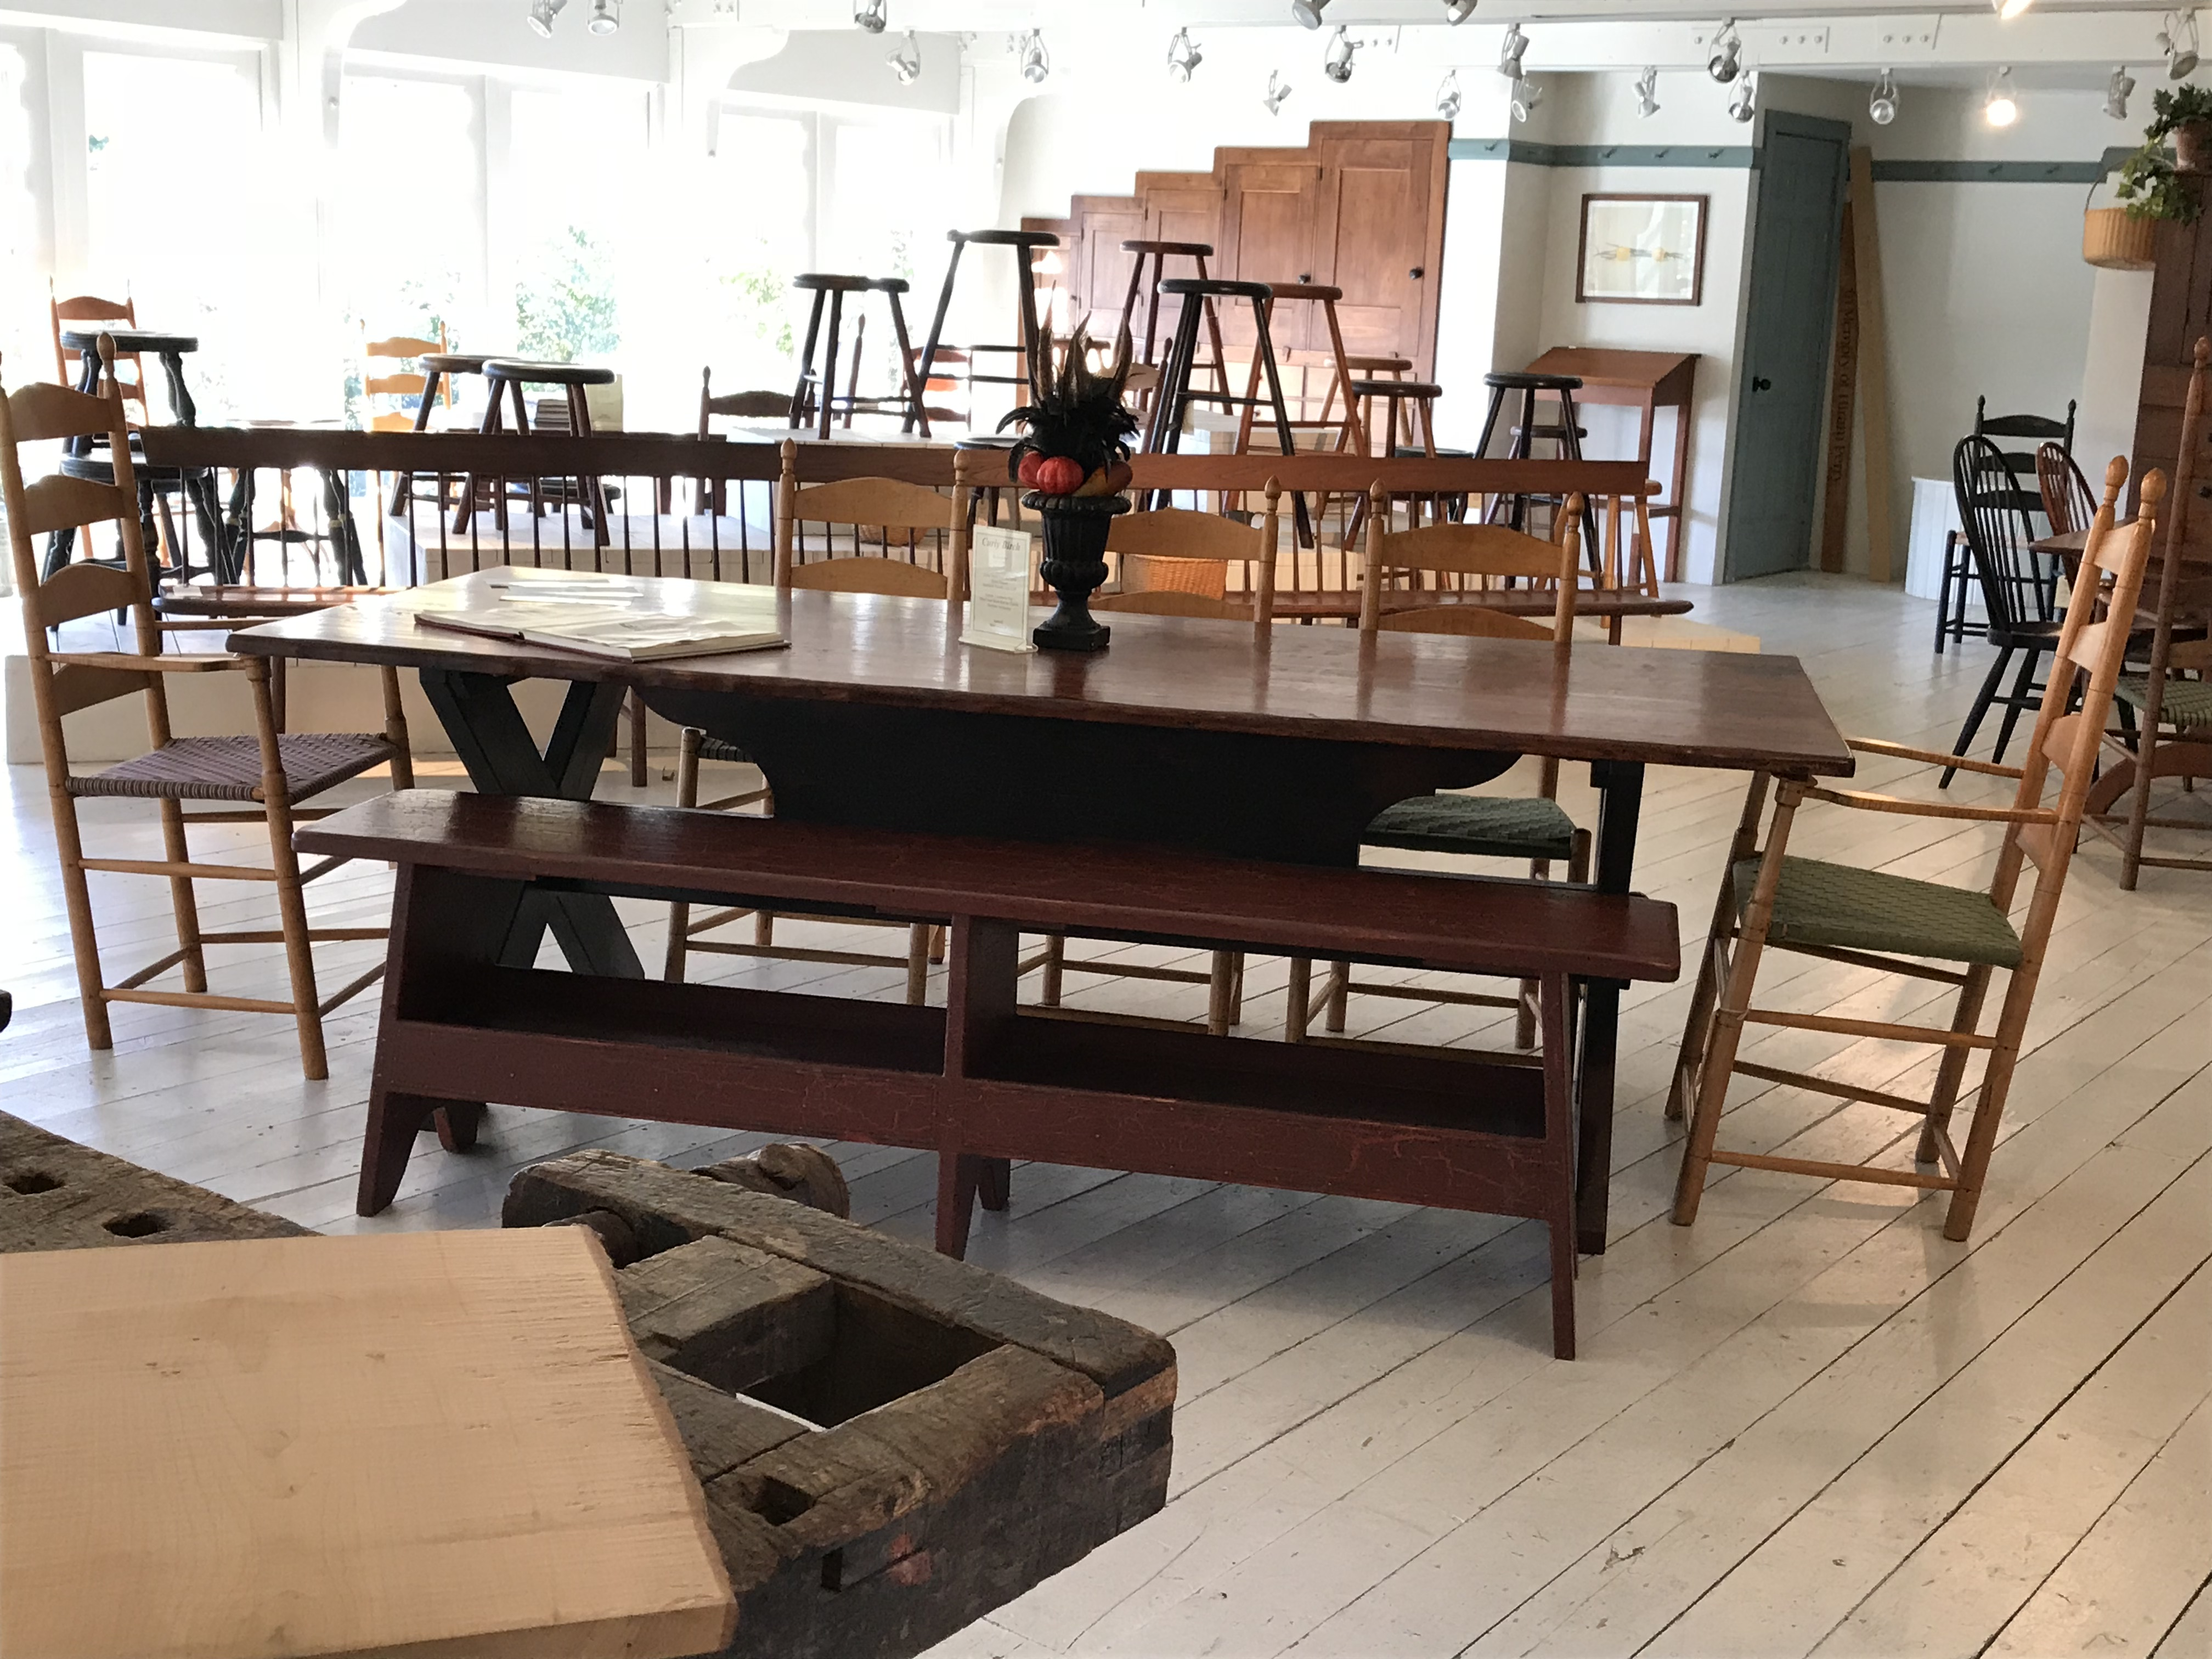 A Light Filled Showroom Filled With Custom Tables, Chairs, And Stools Of  Varying